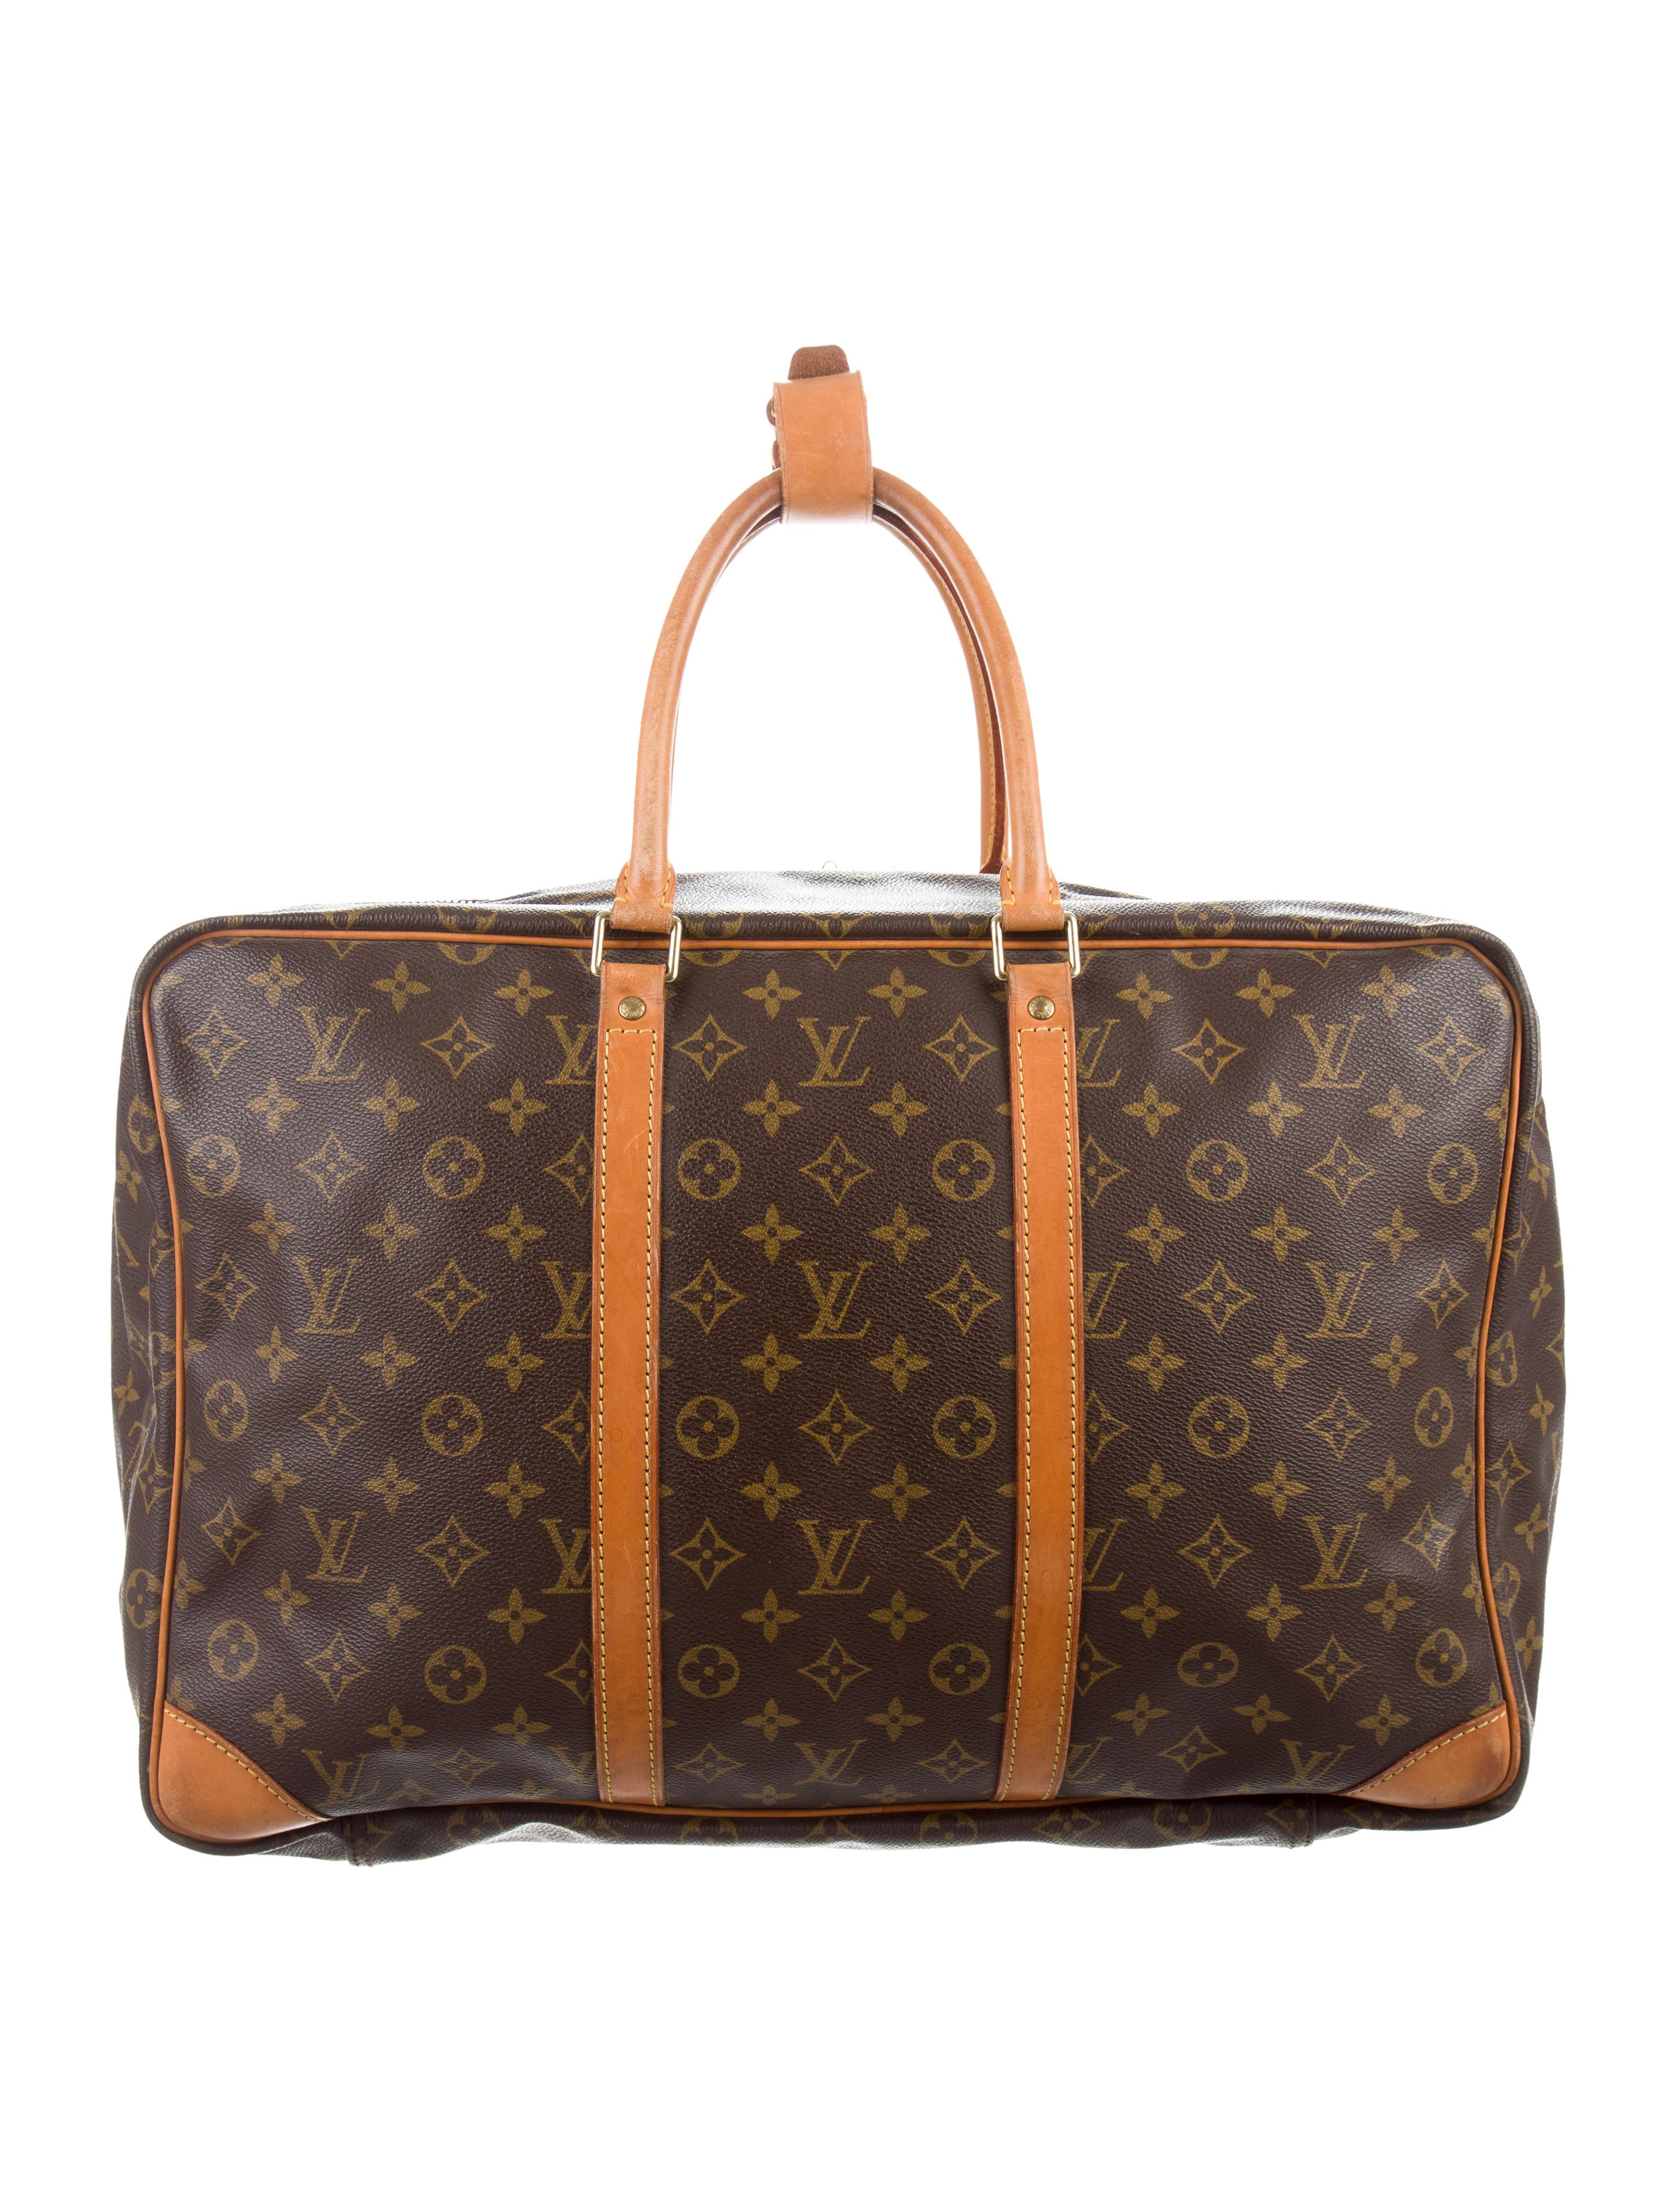 louis vuitton monogram sirius 45 handbags lou136857 the realreal. Black Bedroom Furniture Sets. Home Design Ideas